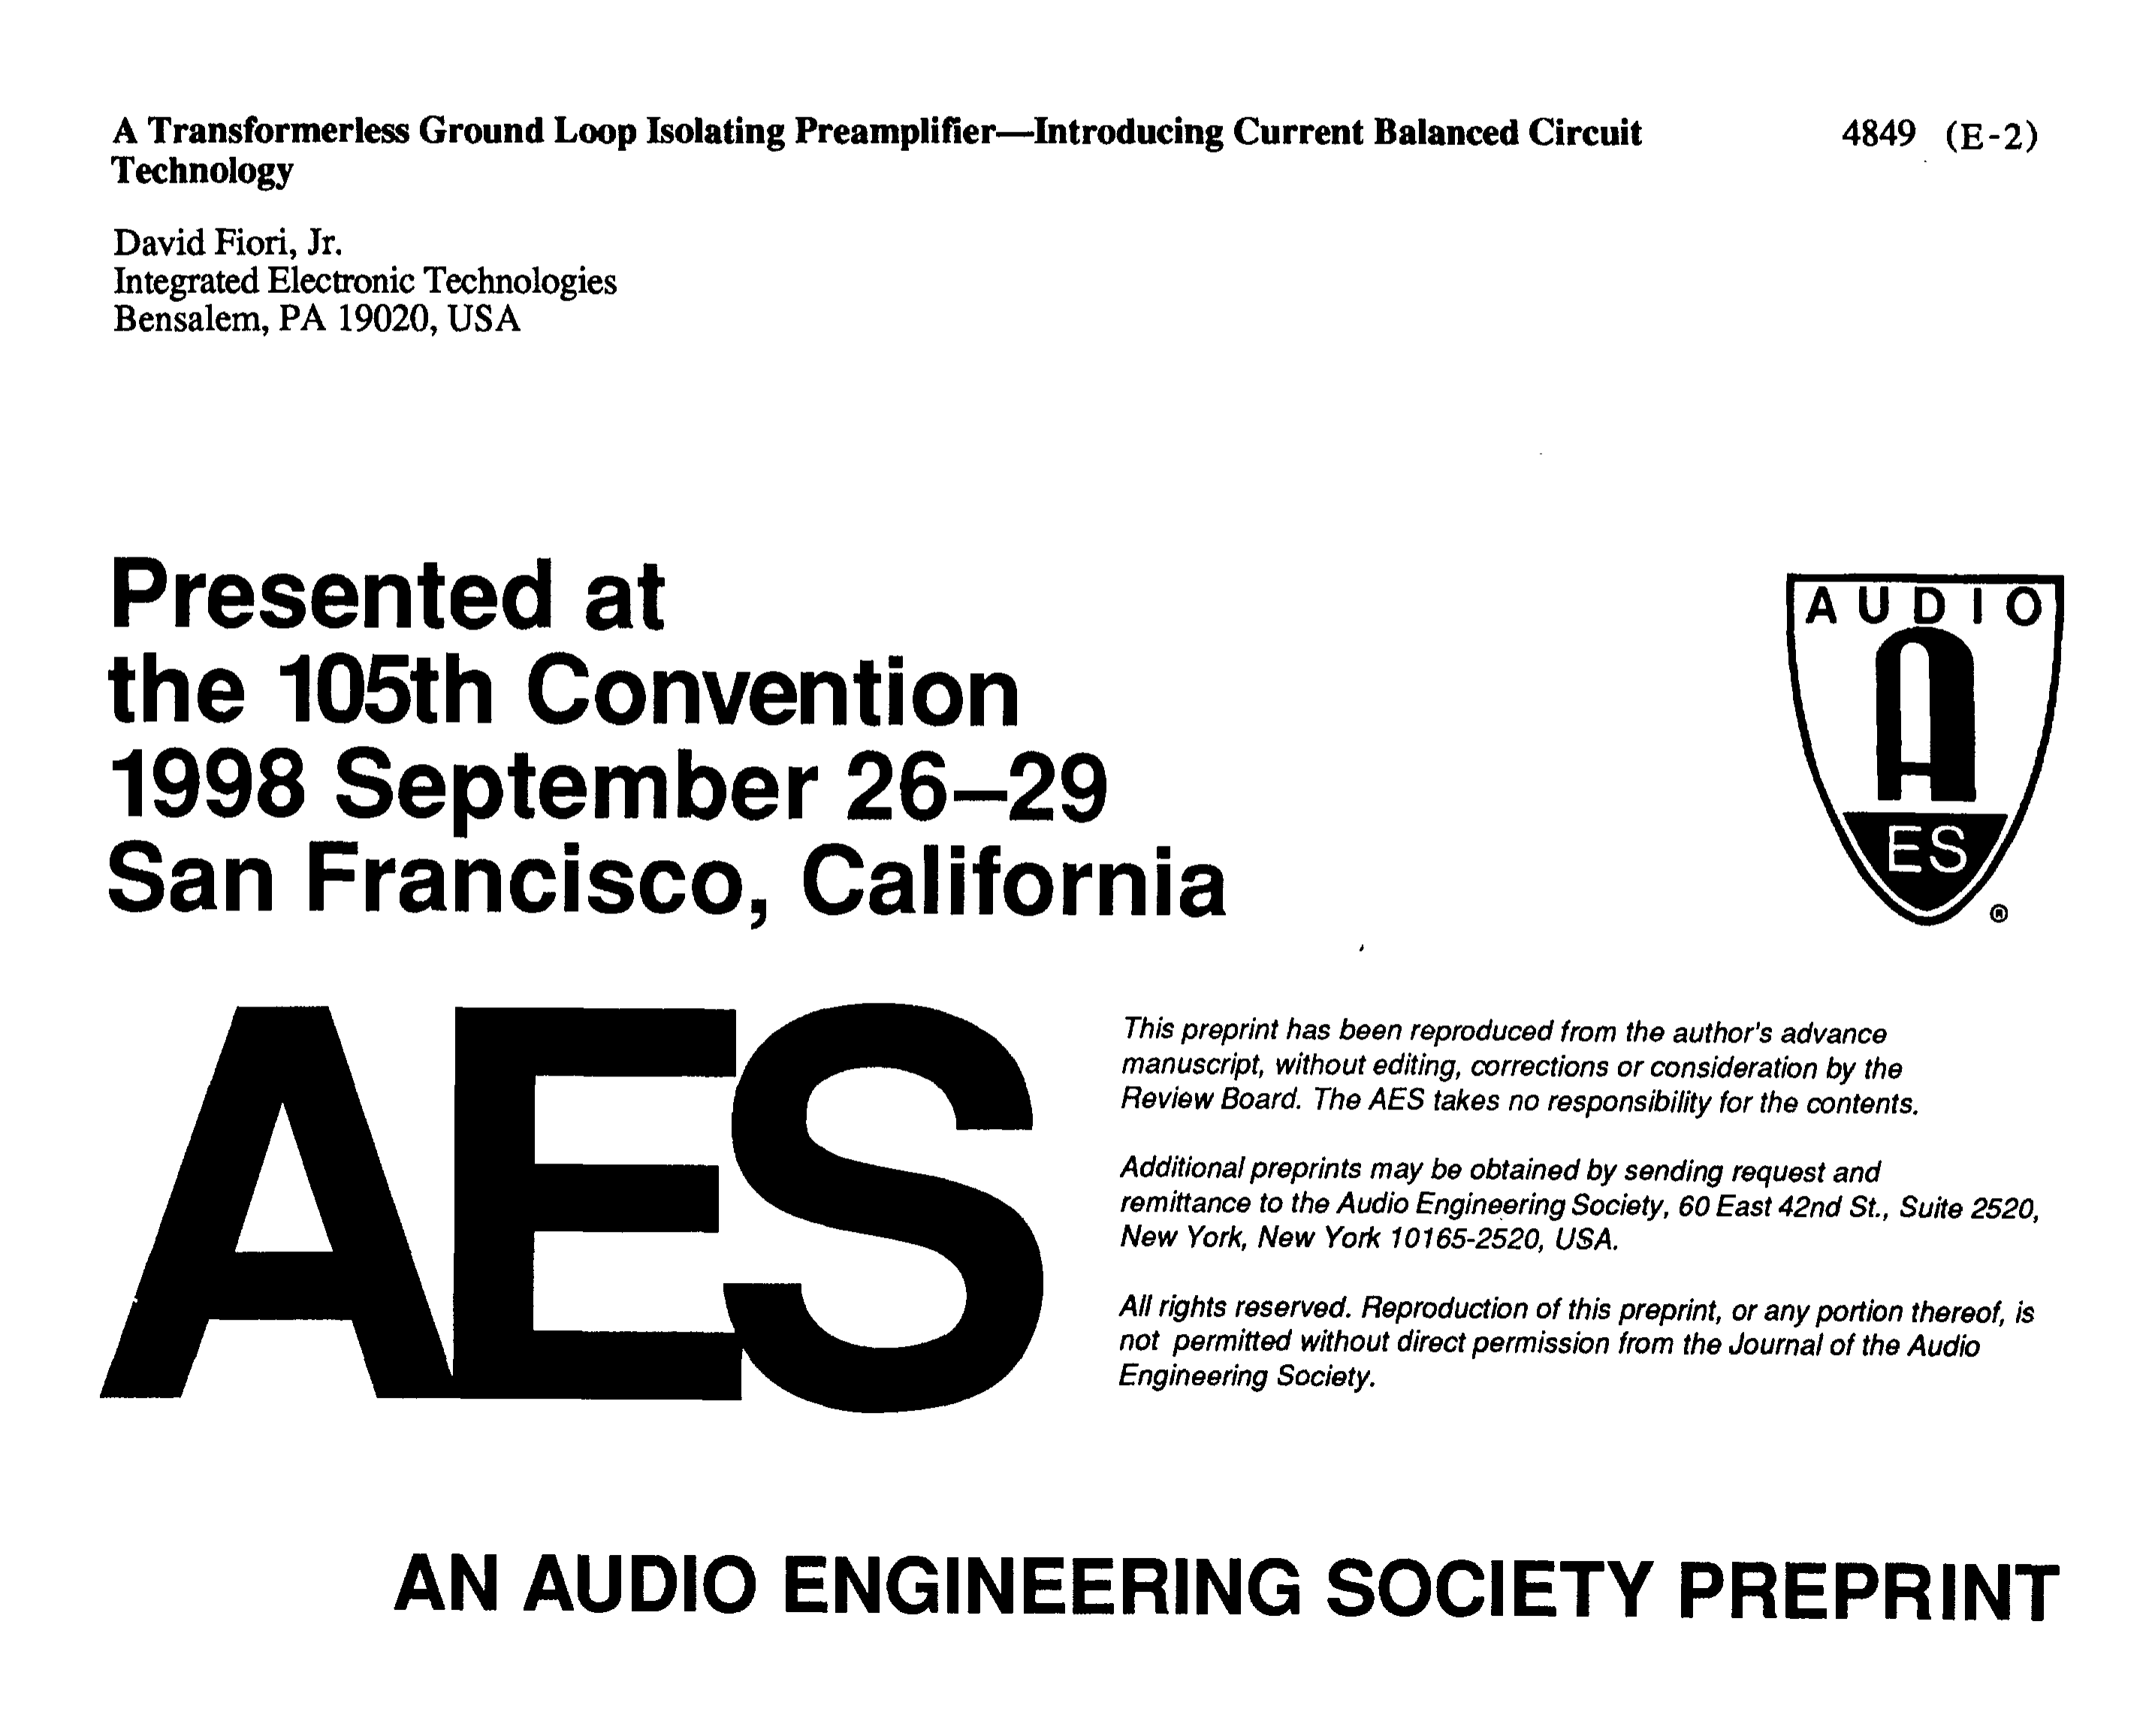 Aes E Library A Transformerless Ground Loop Isolating Preamplifier Electronic Circuit Projects High Current Power Supply Introducing Balanced Technology